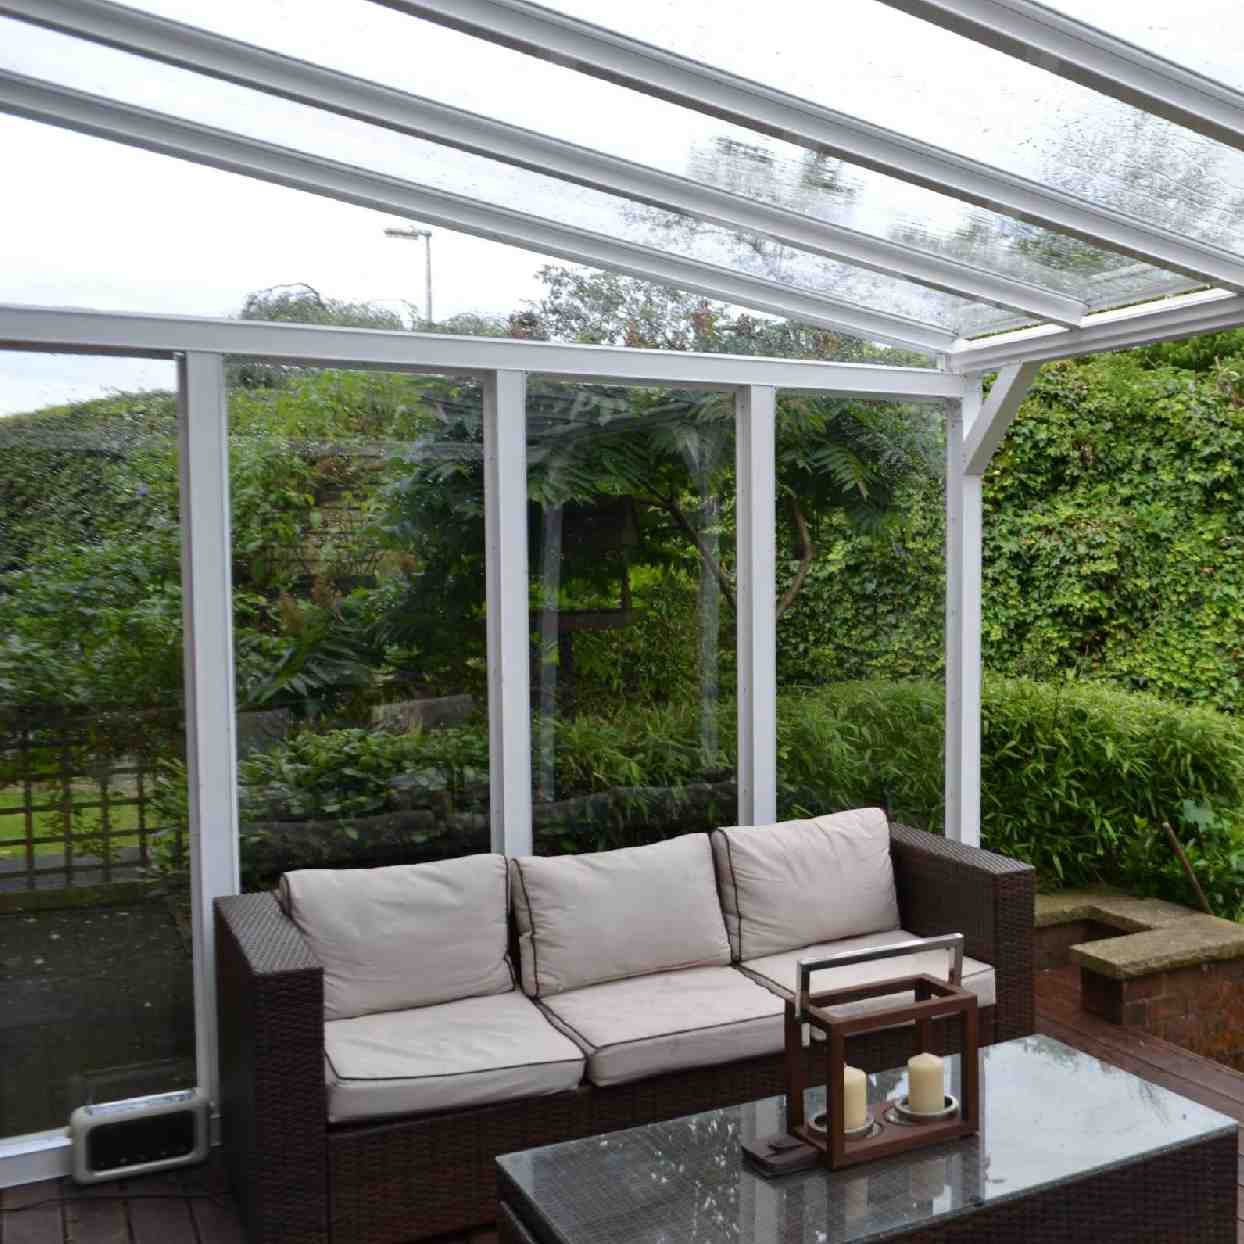 Buy Omega Verandah with 16mm Polycarbonate Glazing - 5.2m (W) x 2.5m (P), (3) Supporting Posts online today